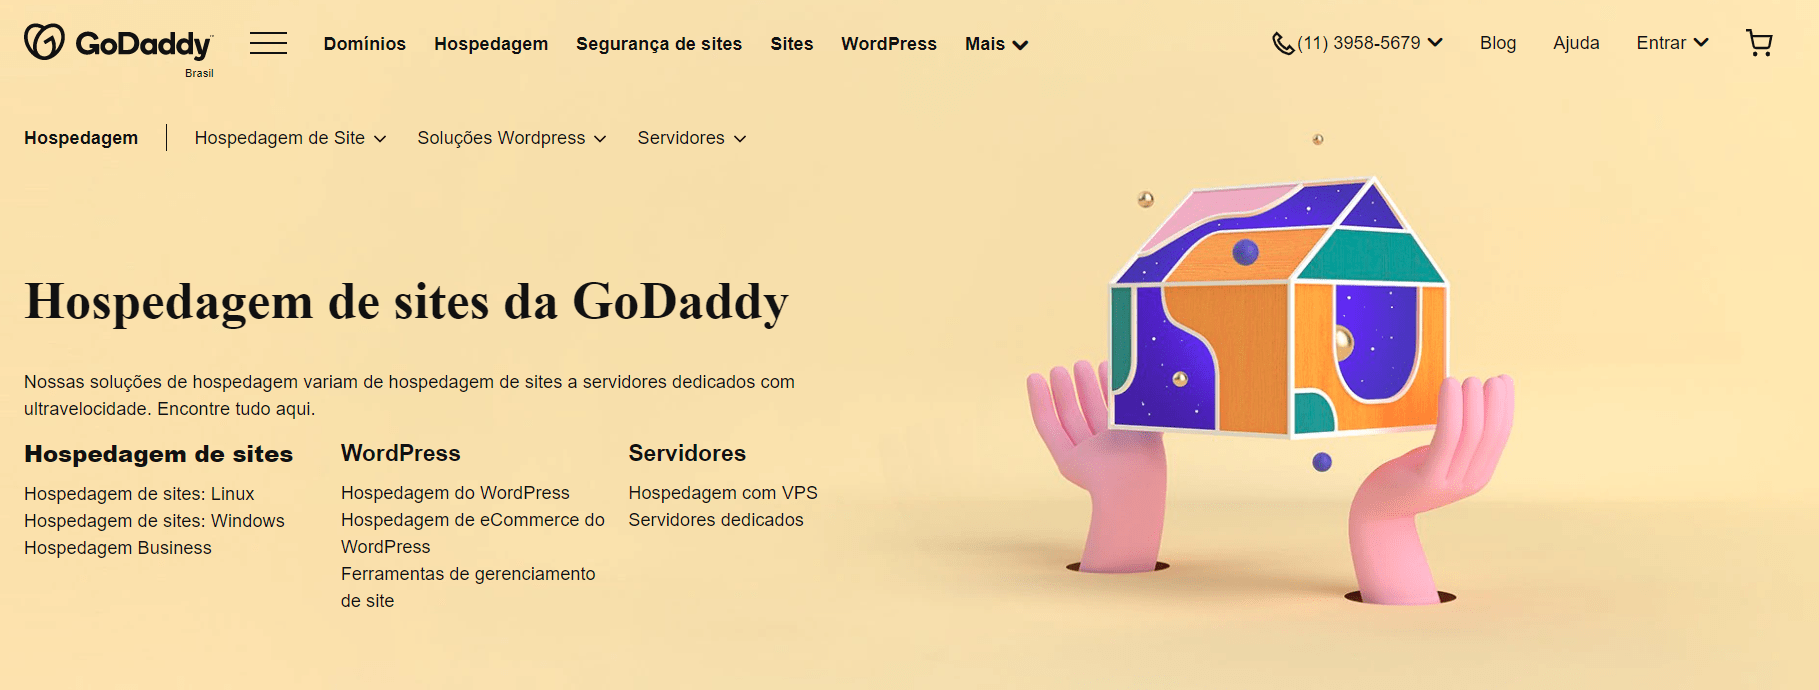 the GoDaddy home page